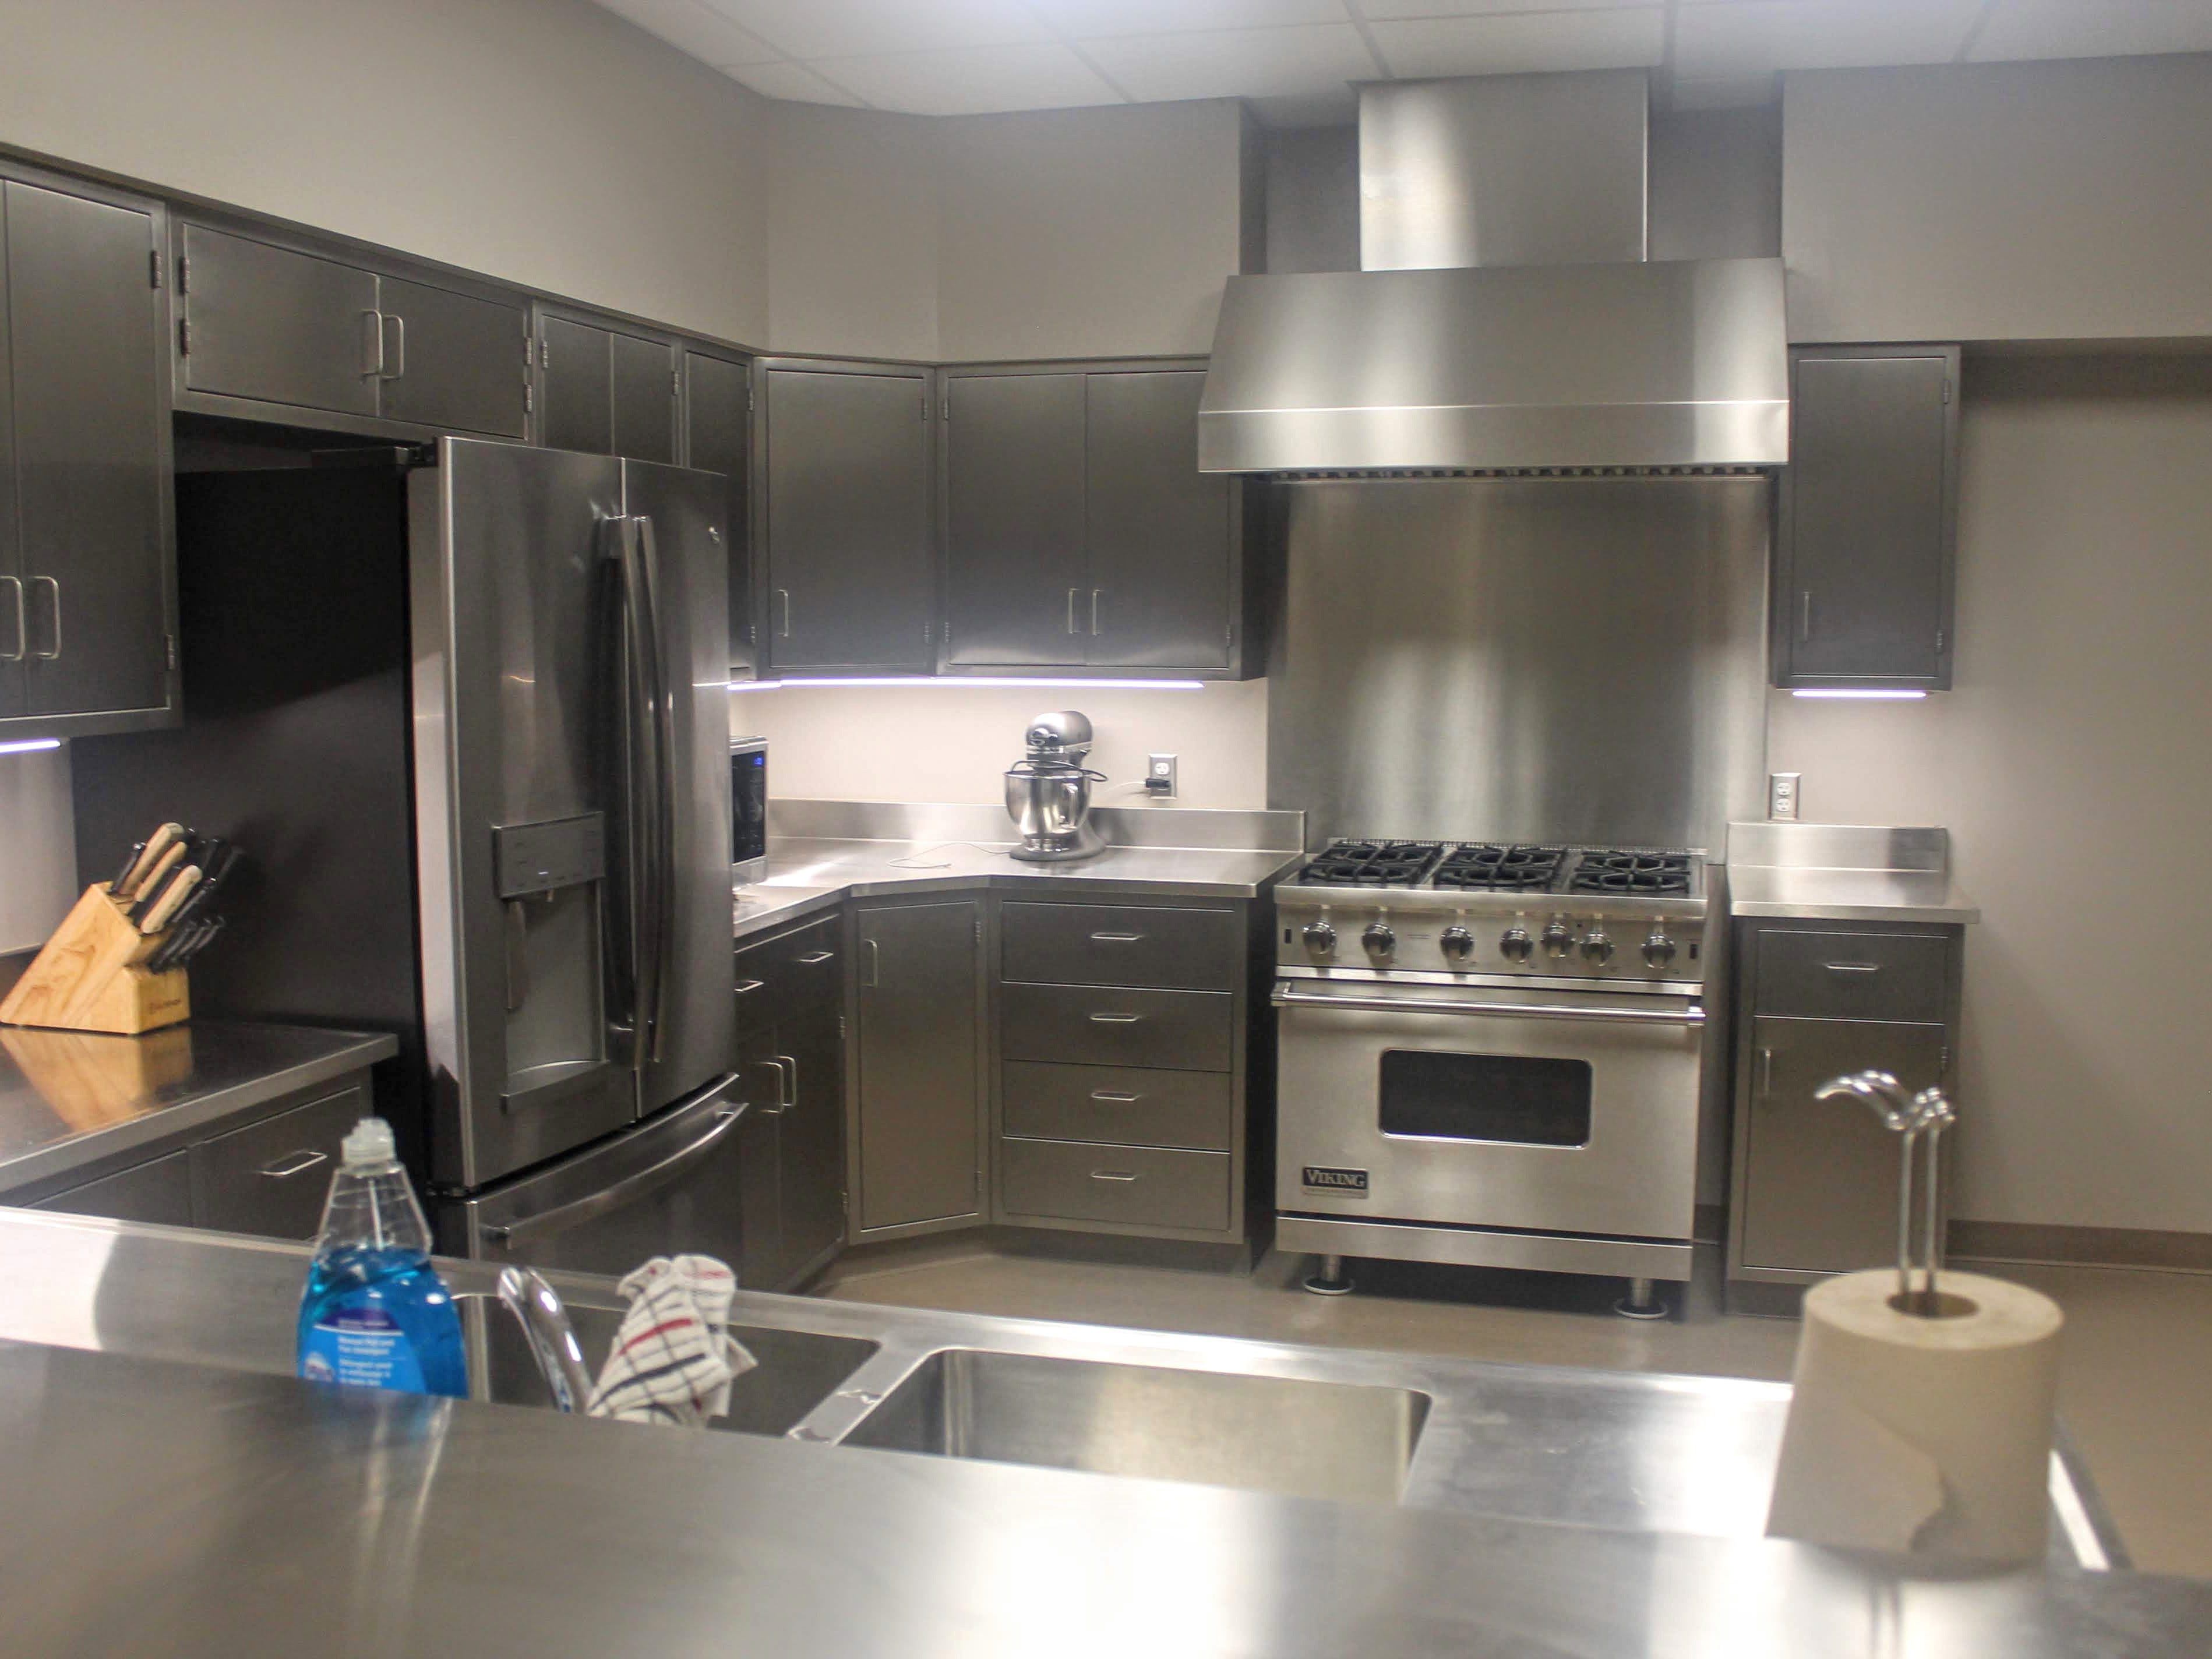 The new kitchen in the fire station.